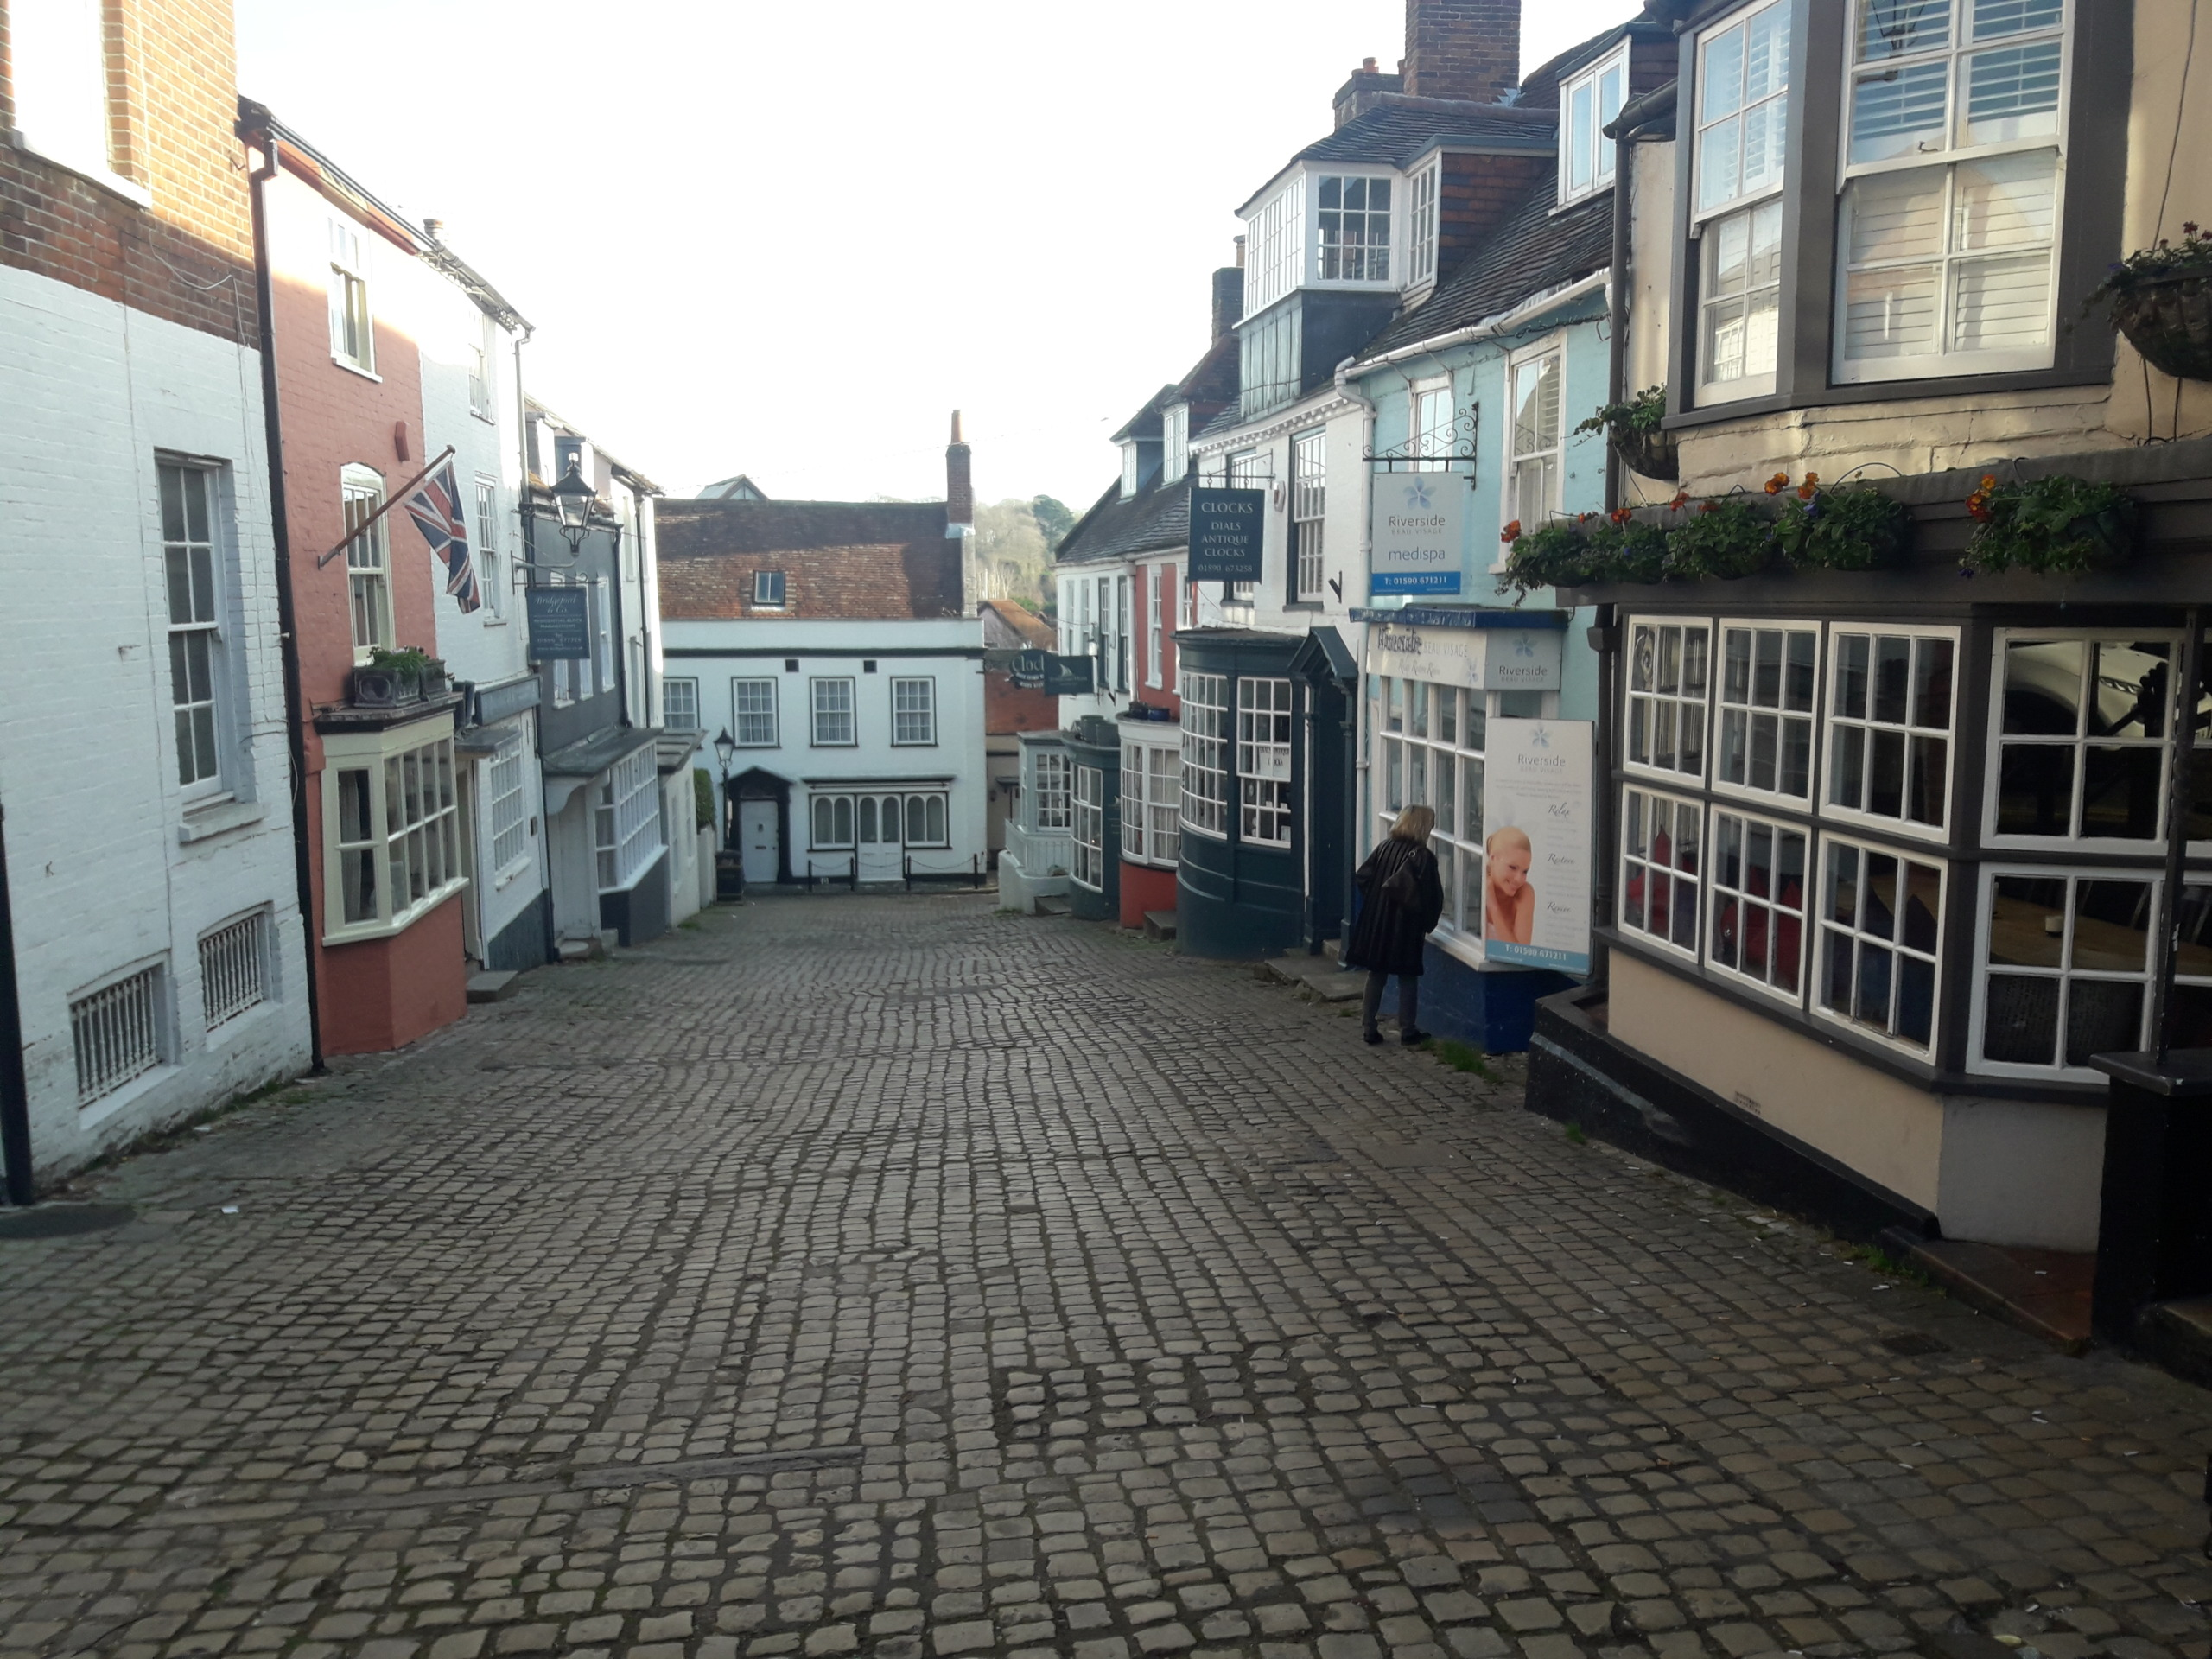 Cobbled street with shops